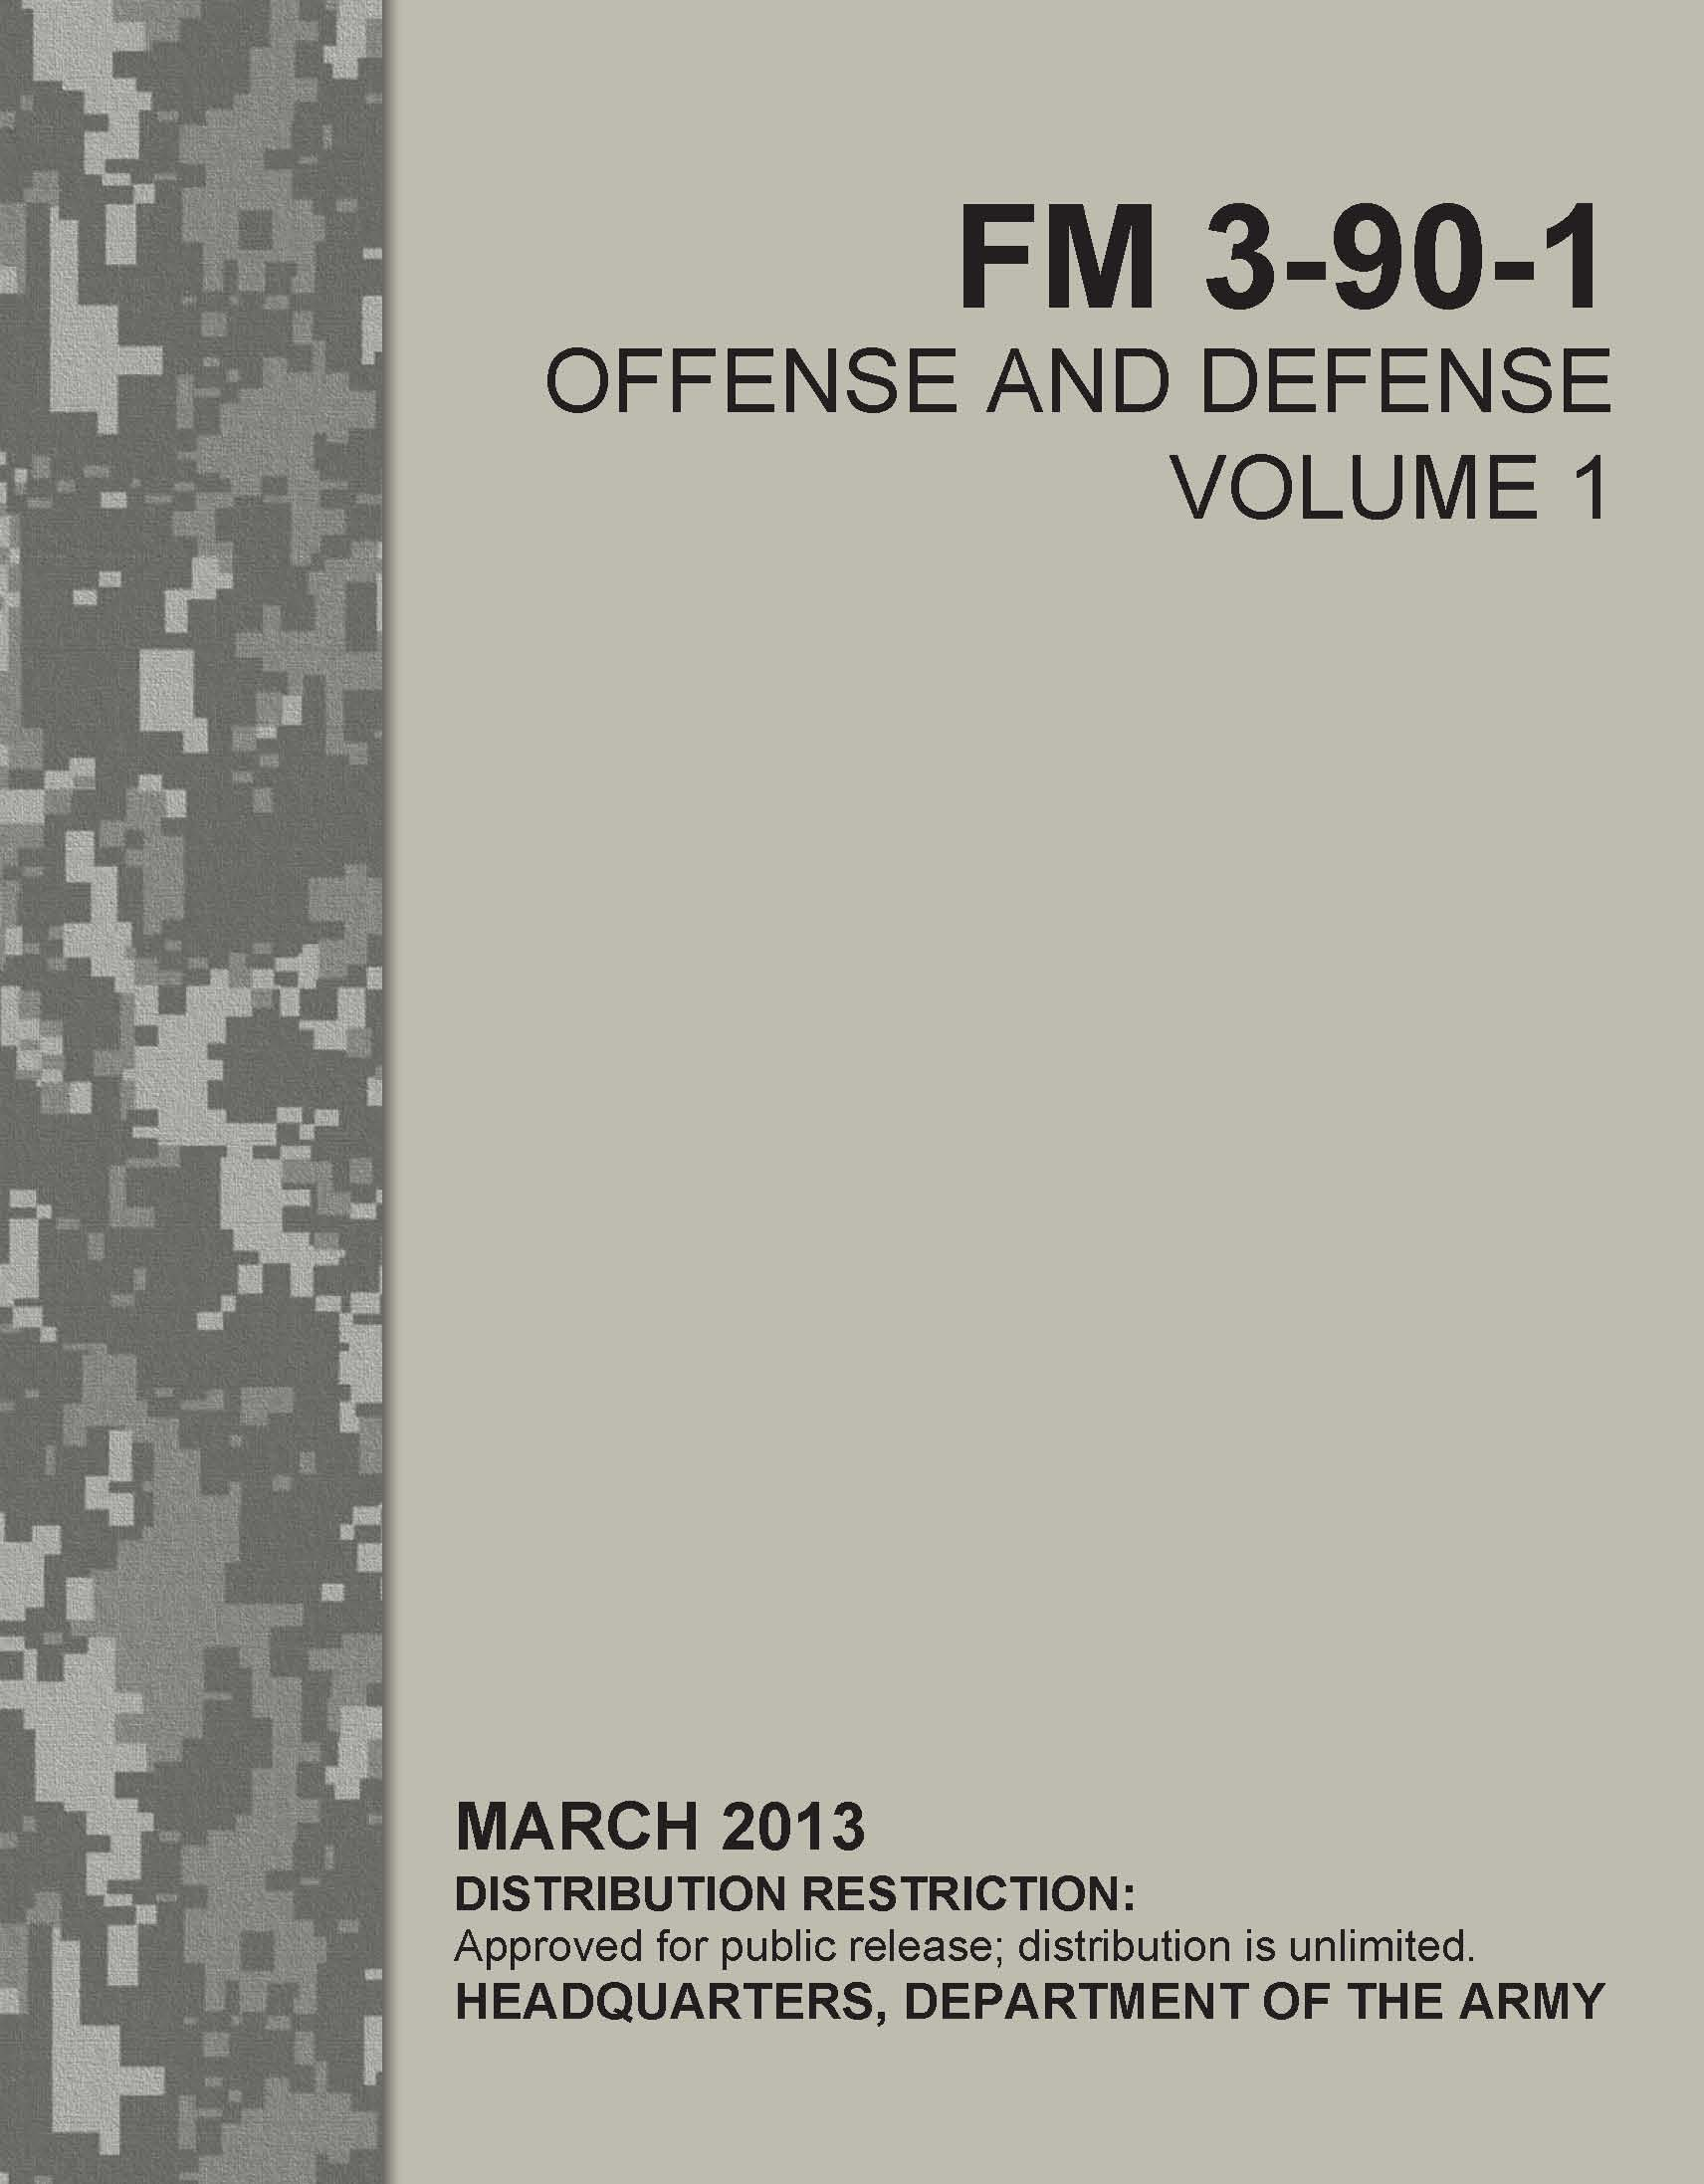 FM 3-90-1 Offense and Defense, Vol 1